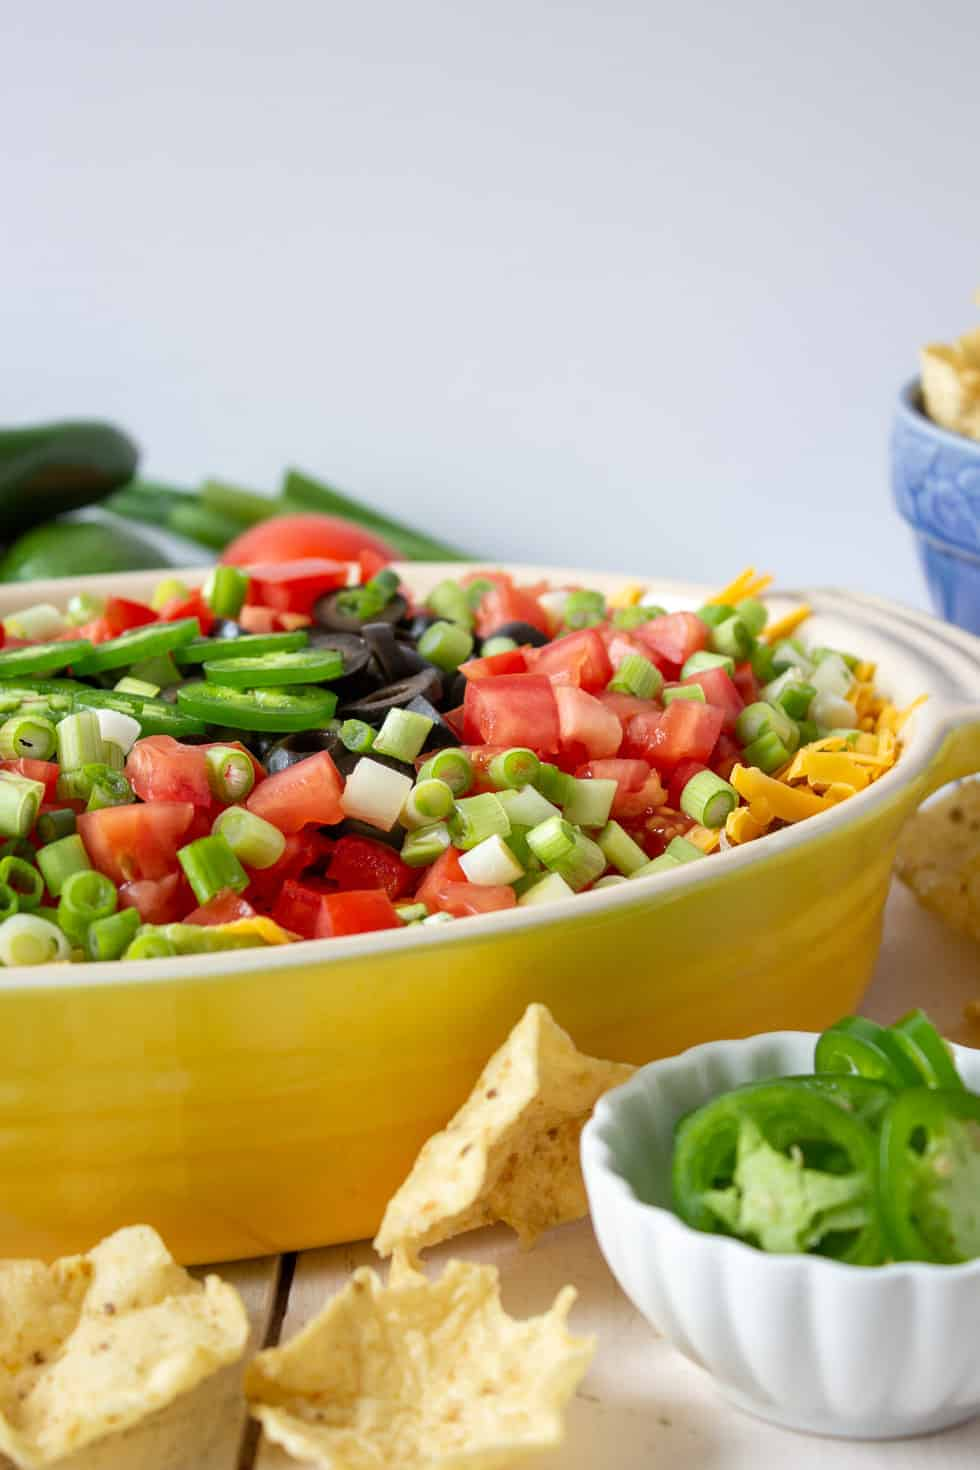 Chips scattered on a board in front of a yellow casserole dish filled with a layered dip.